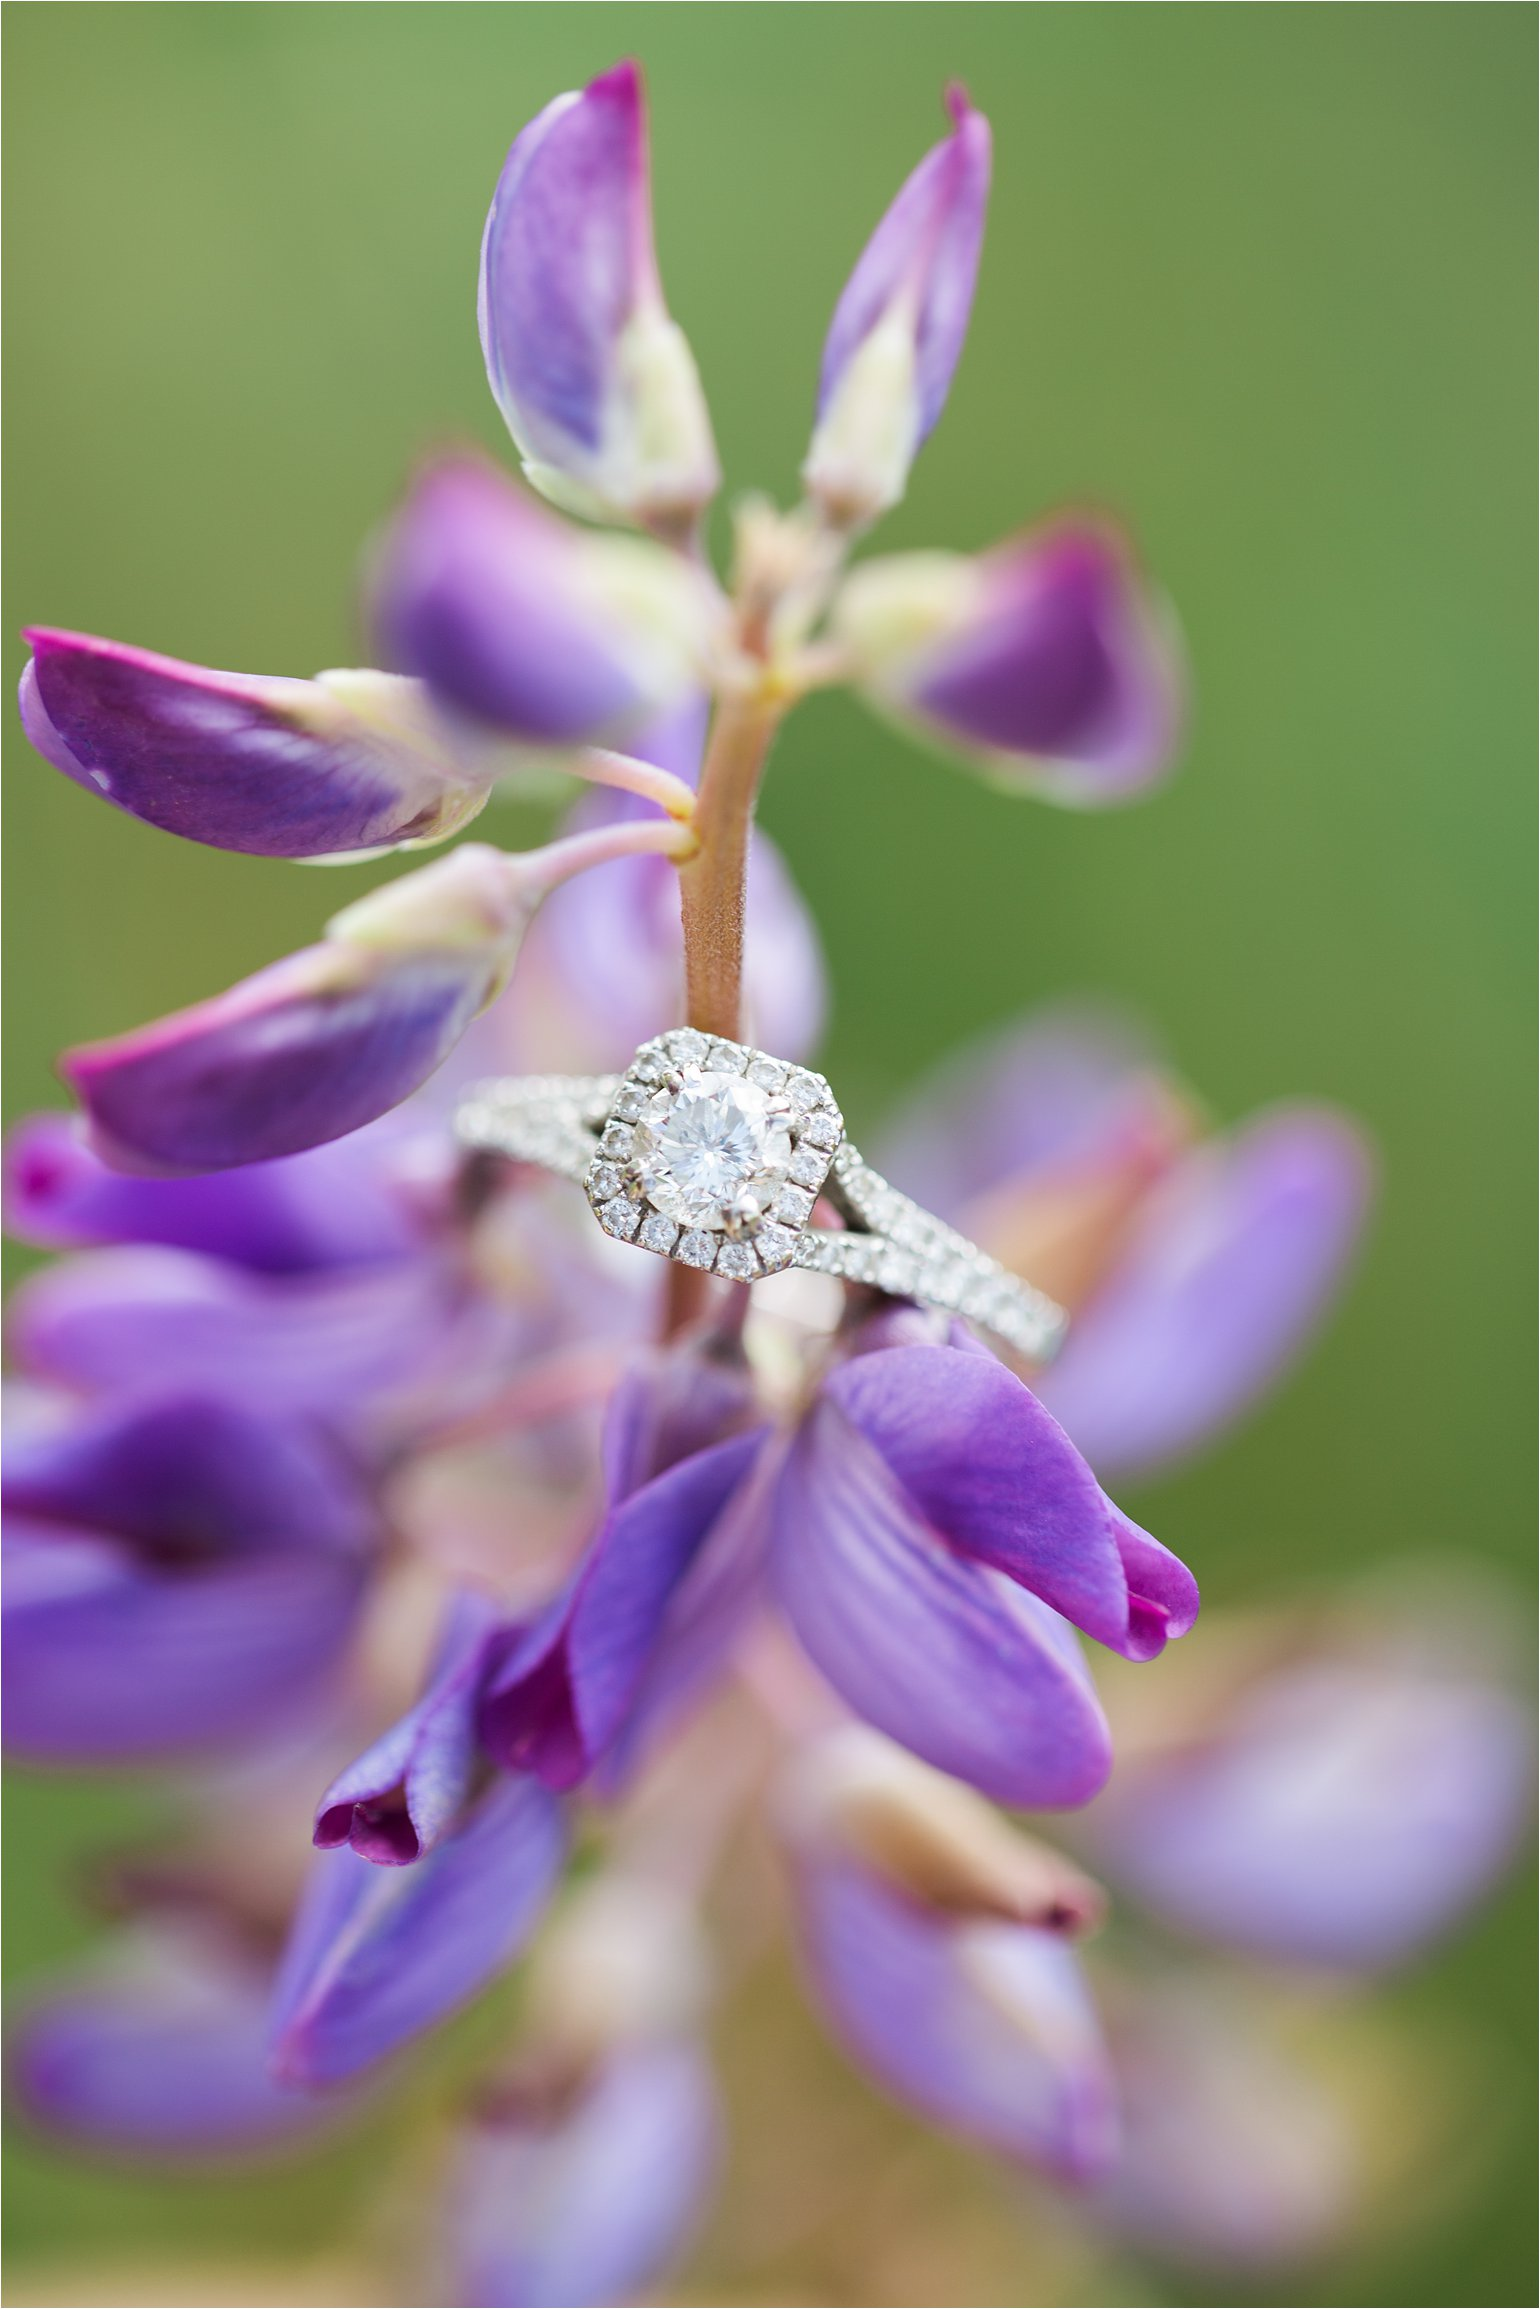 Engagement Ring on Flowers © 2015 Maundy Mitchell_0023.jpg